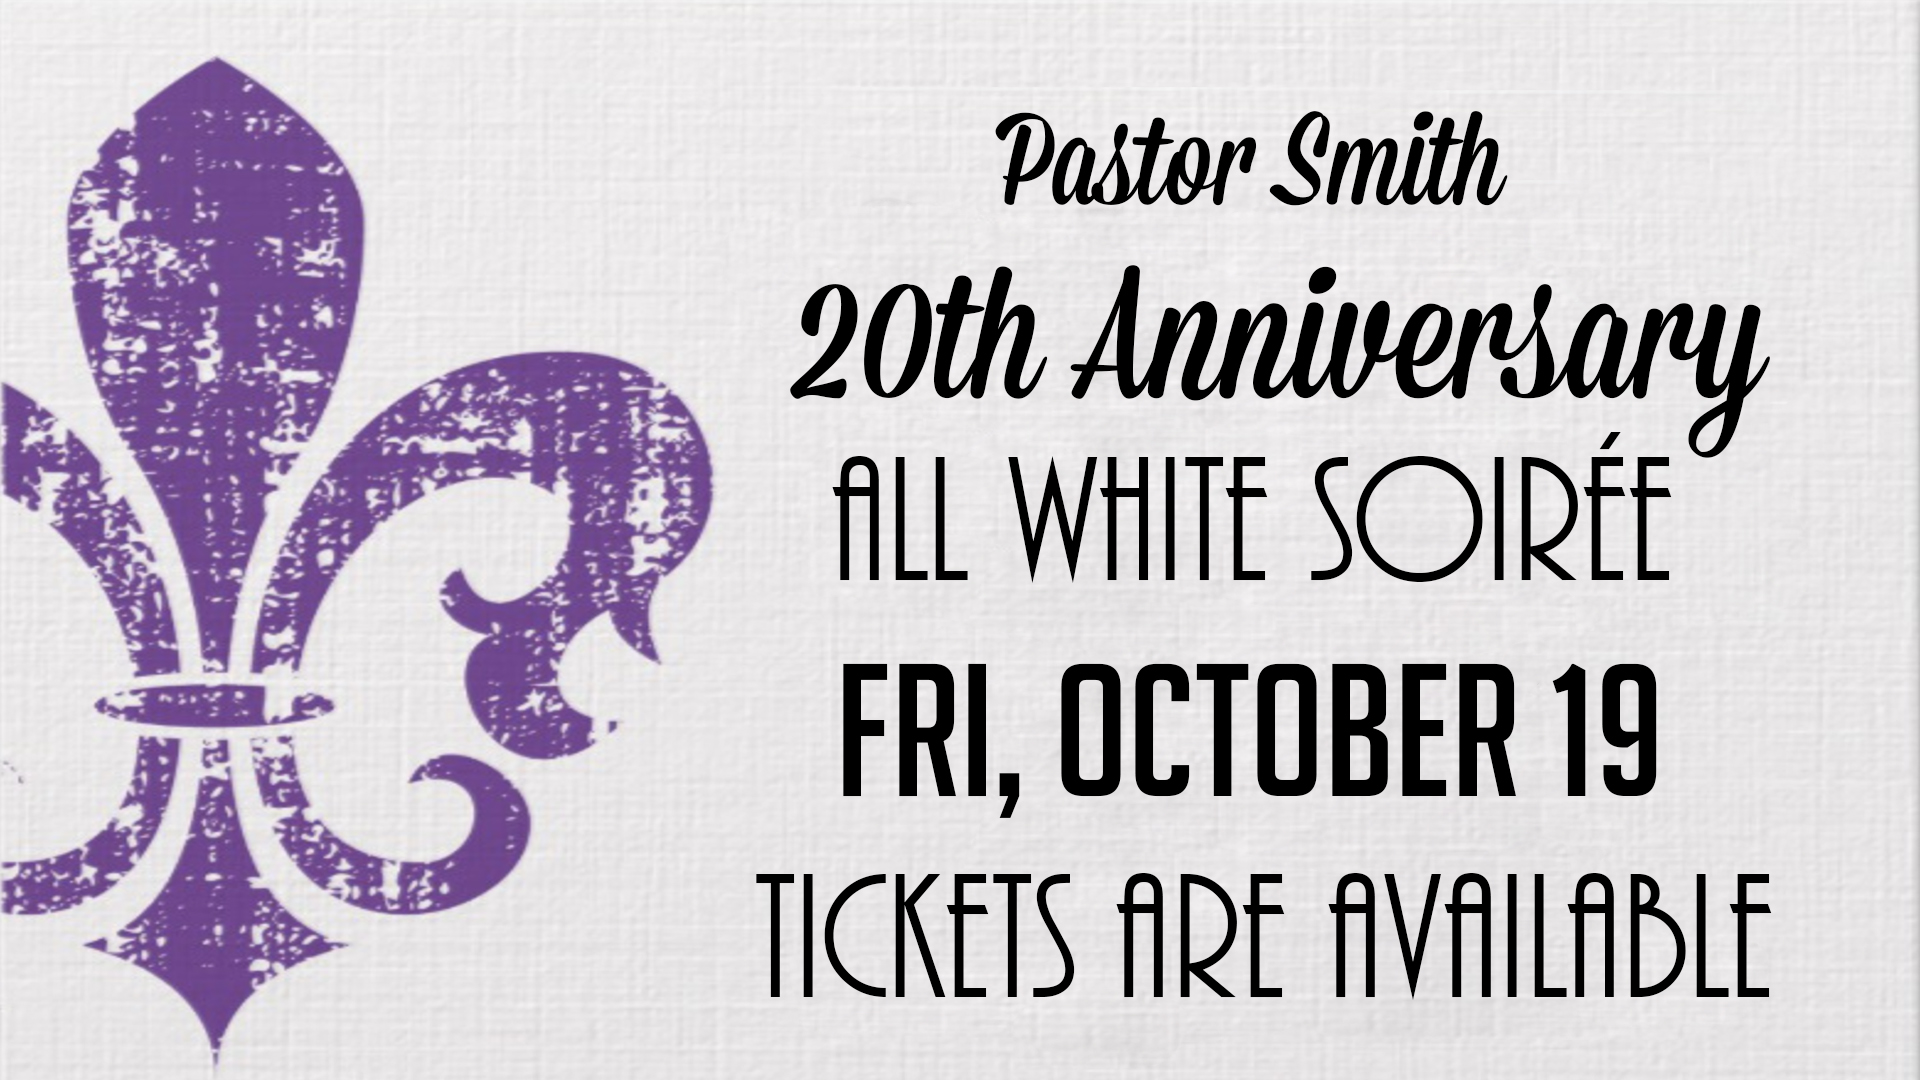 Pastor's 20th Anniversary Soiree logo